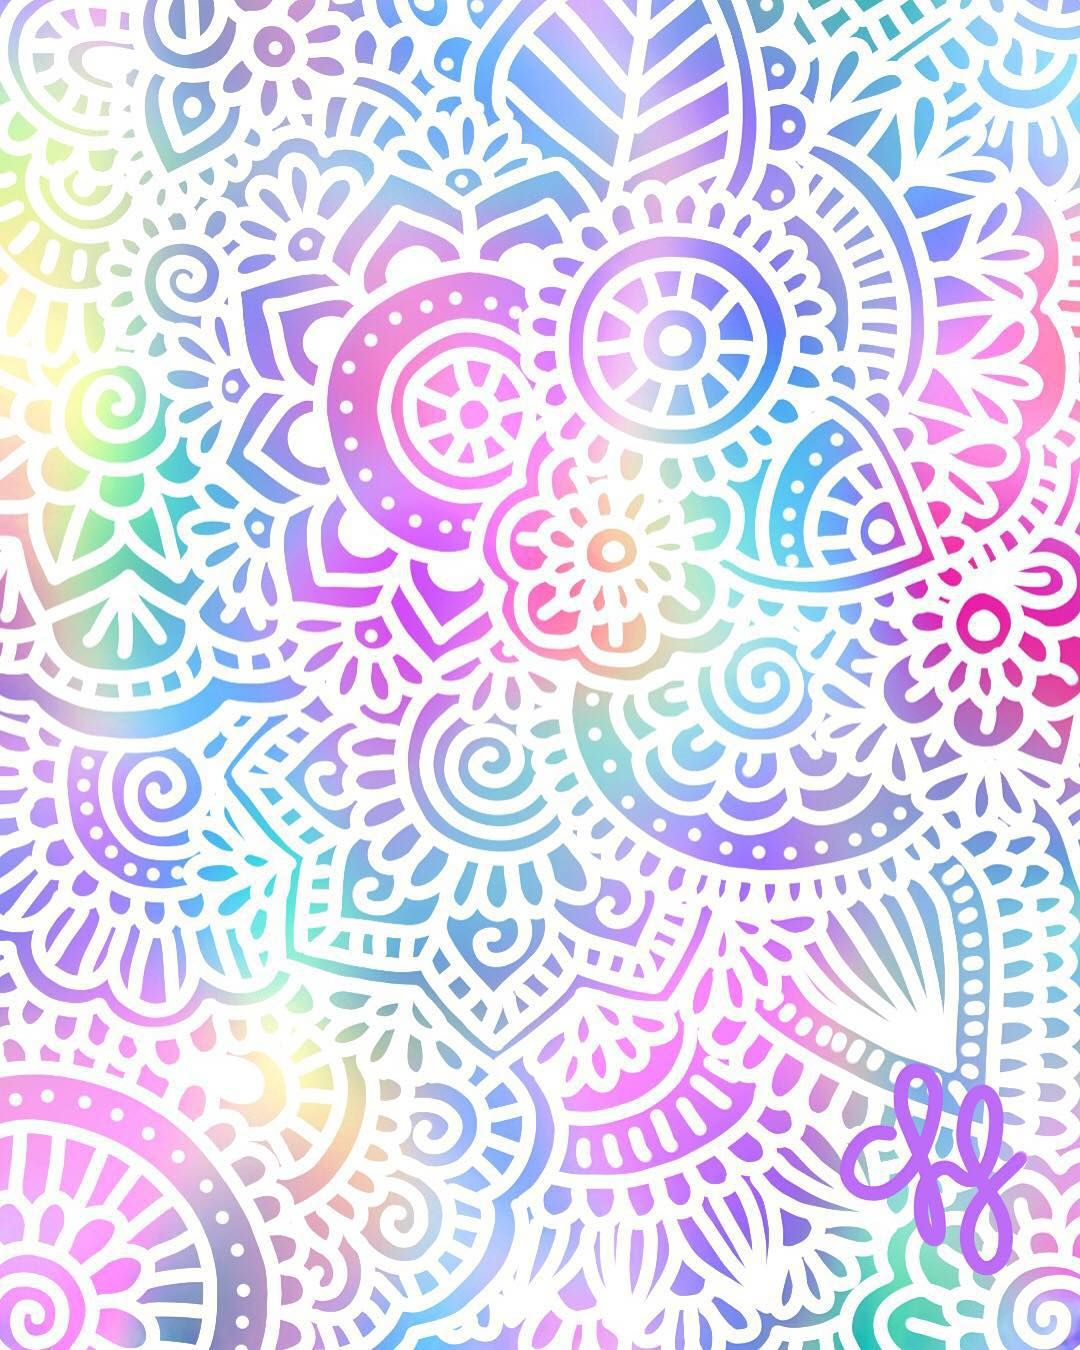 Wallpaper iphone mandala - Mandala Art